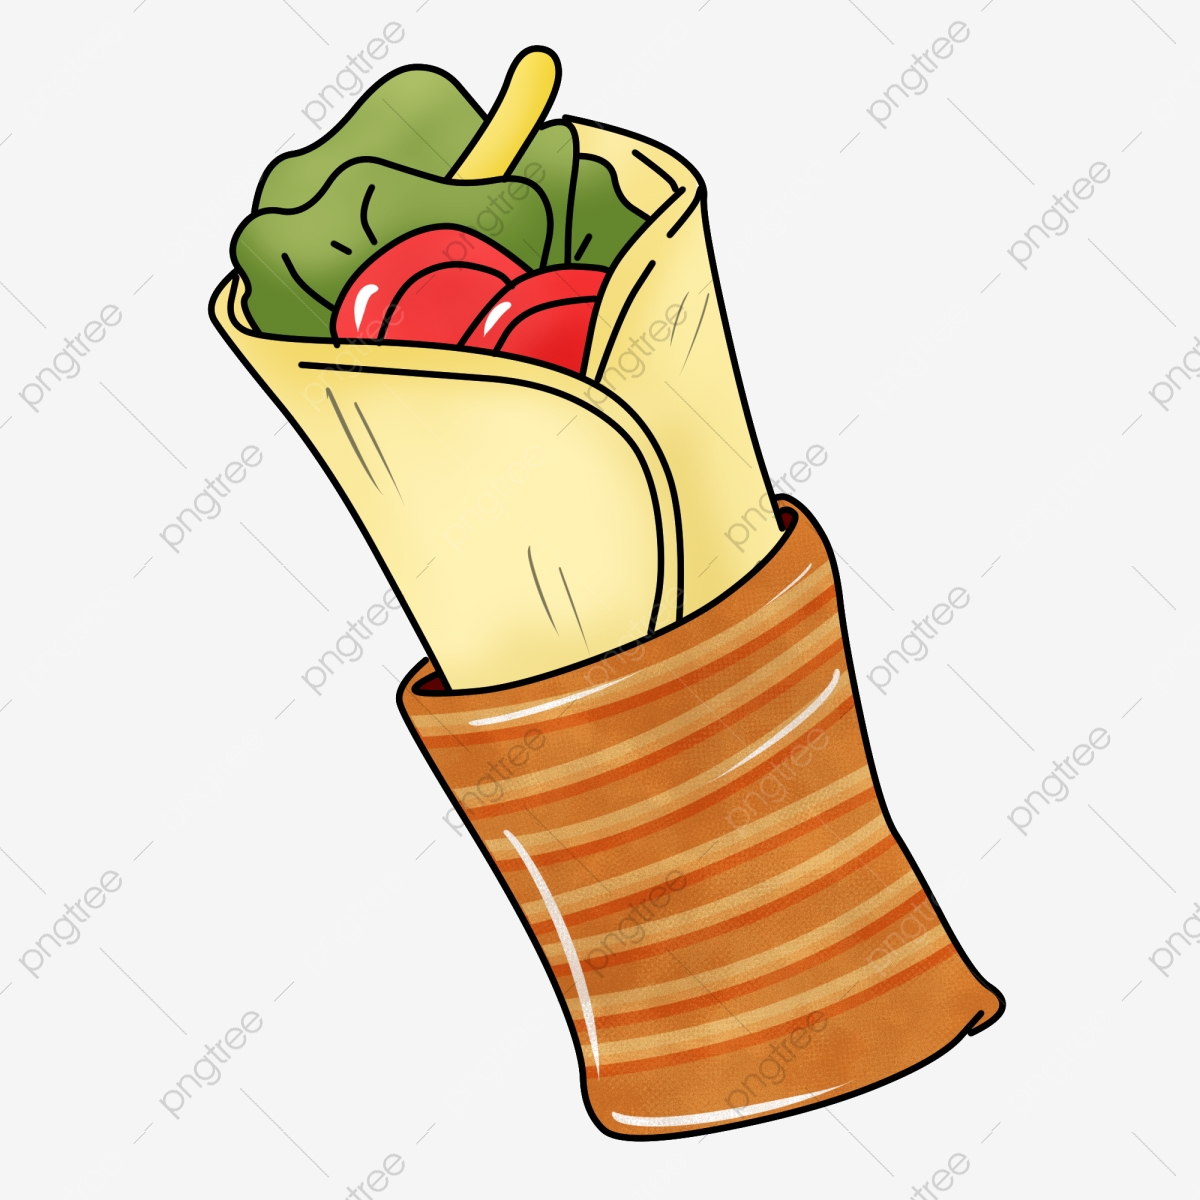 Hand drawn burritos illustration. Burrito clipart small food